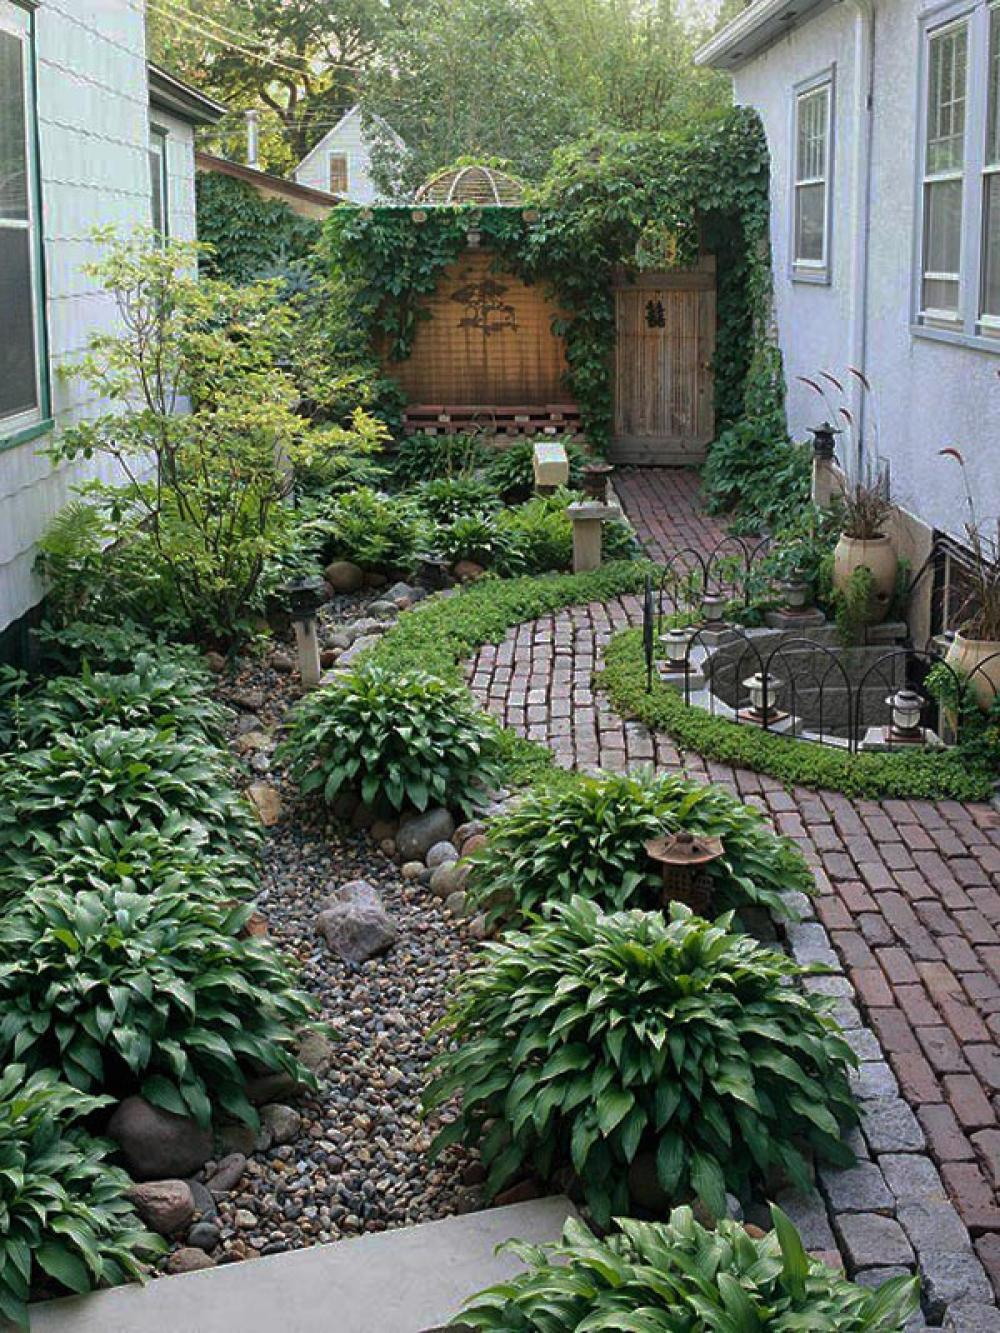 House Garden Design Ideas Of Small Garden Design In Home Home And Design